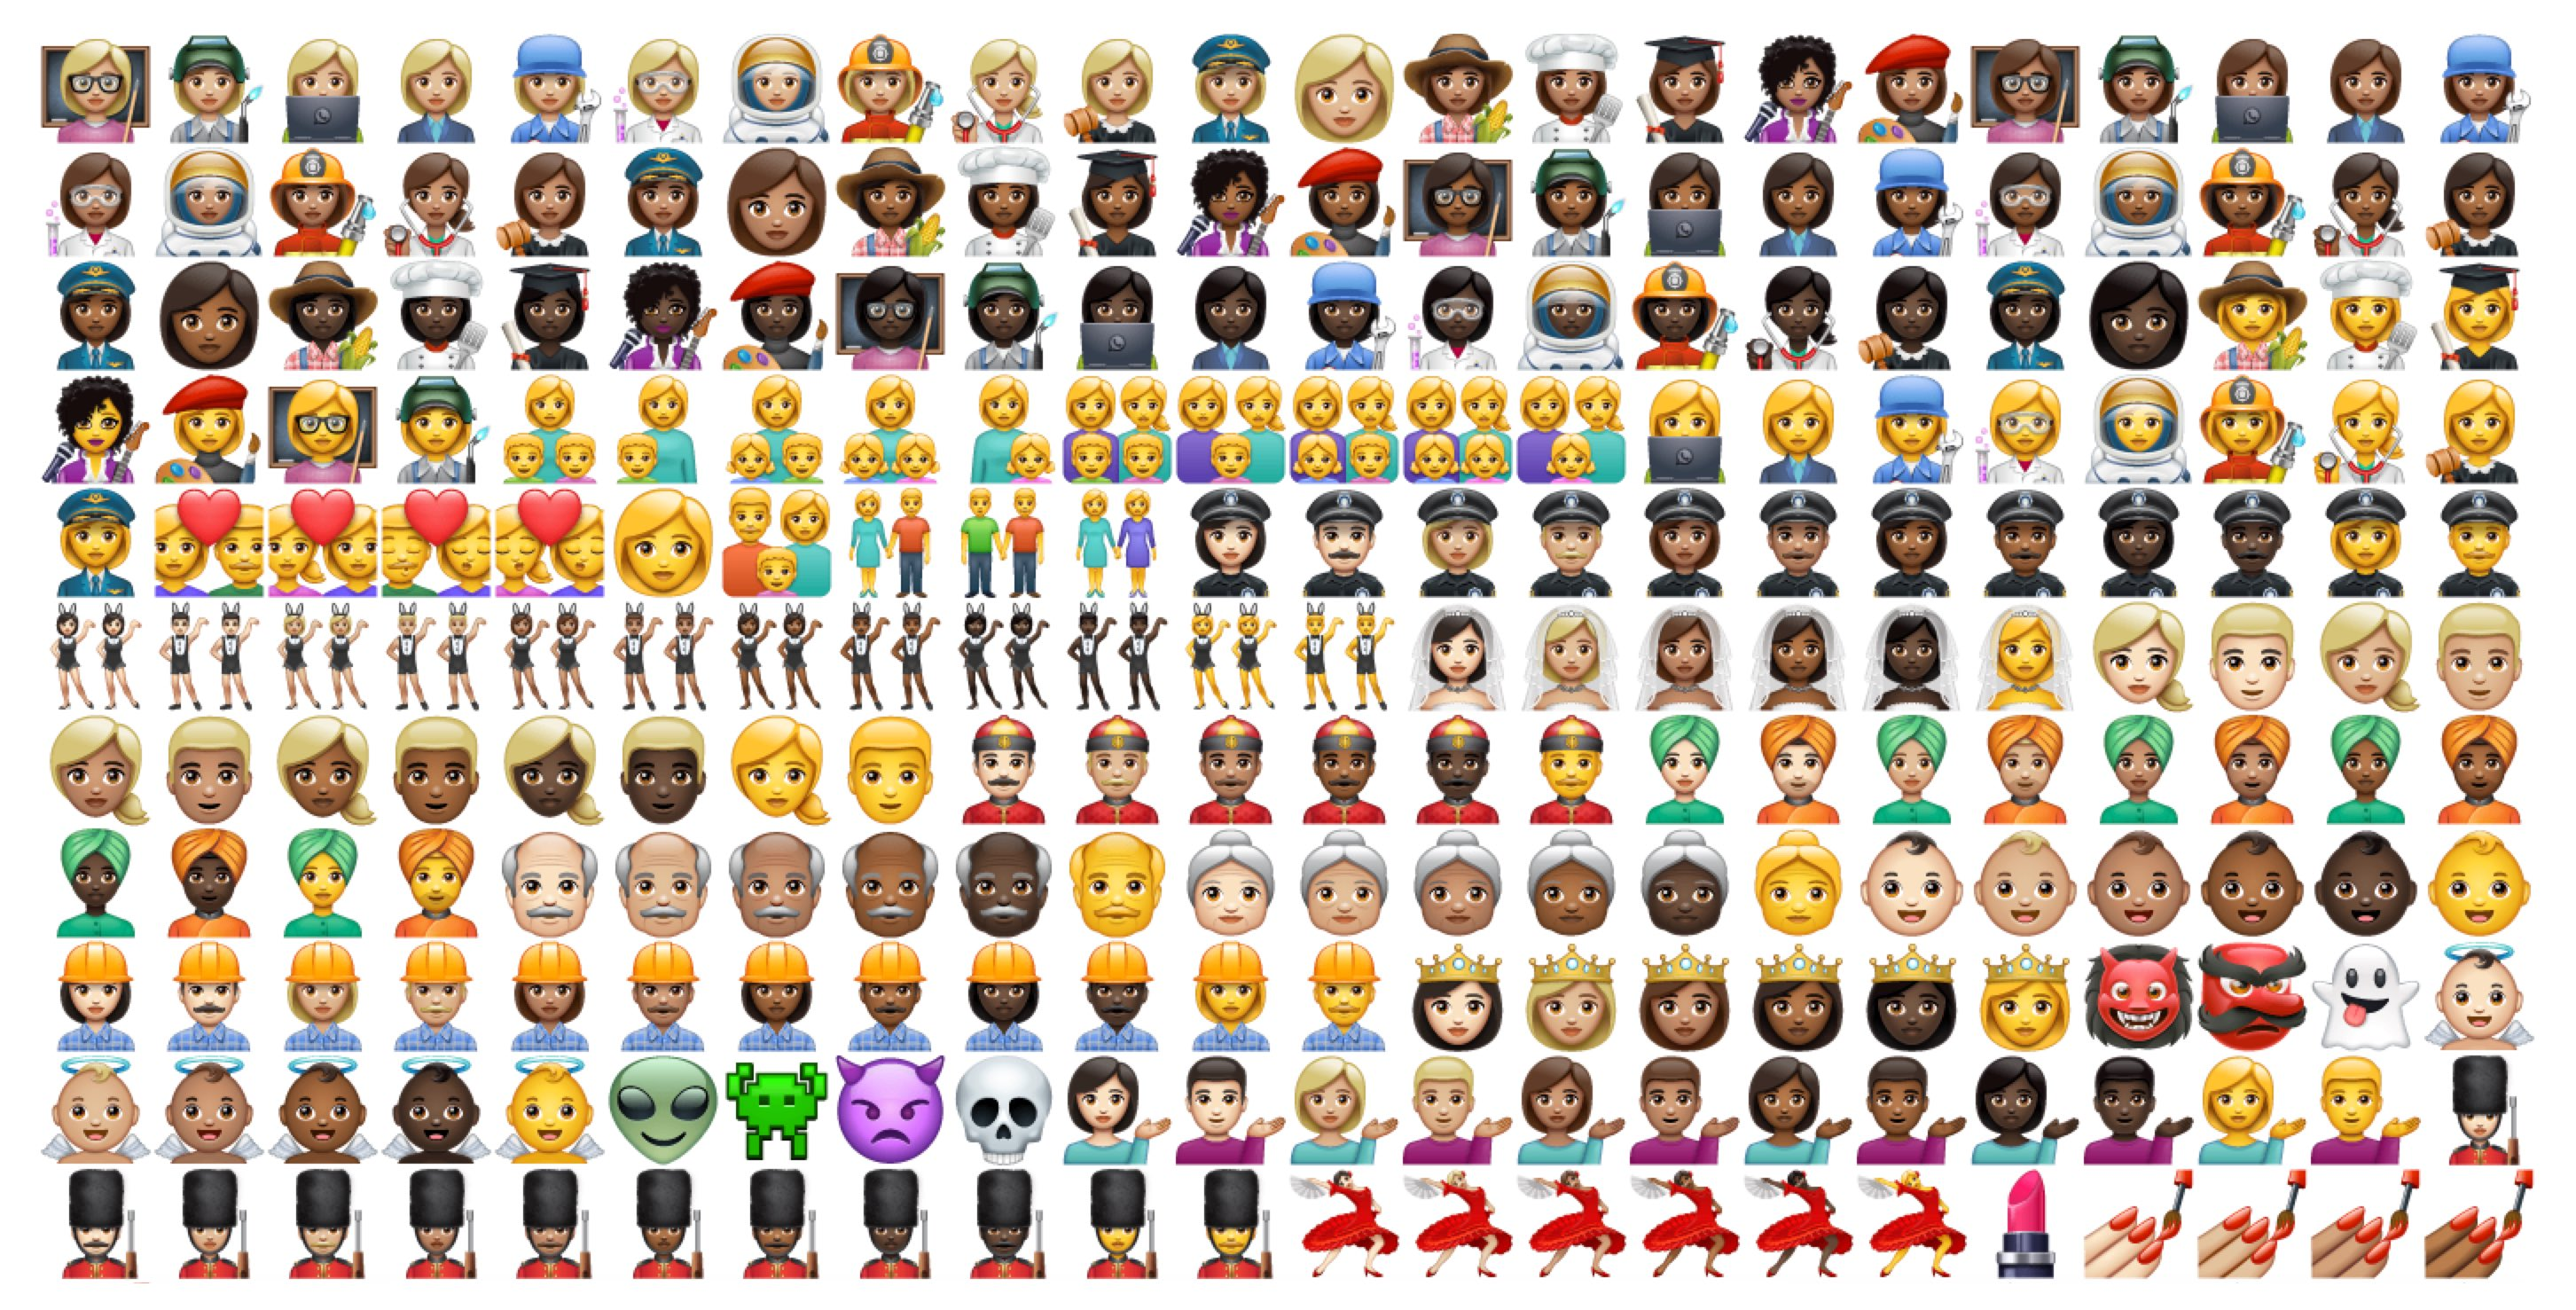 whatsapp-new-emojis-emojipedia-2017